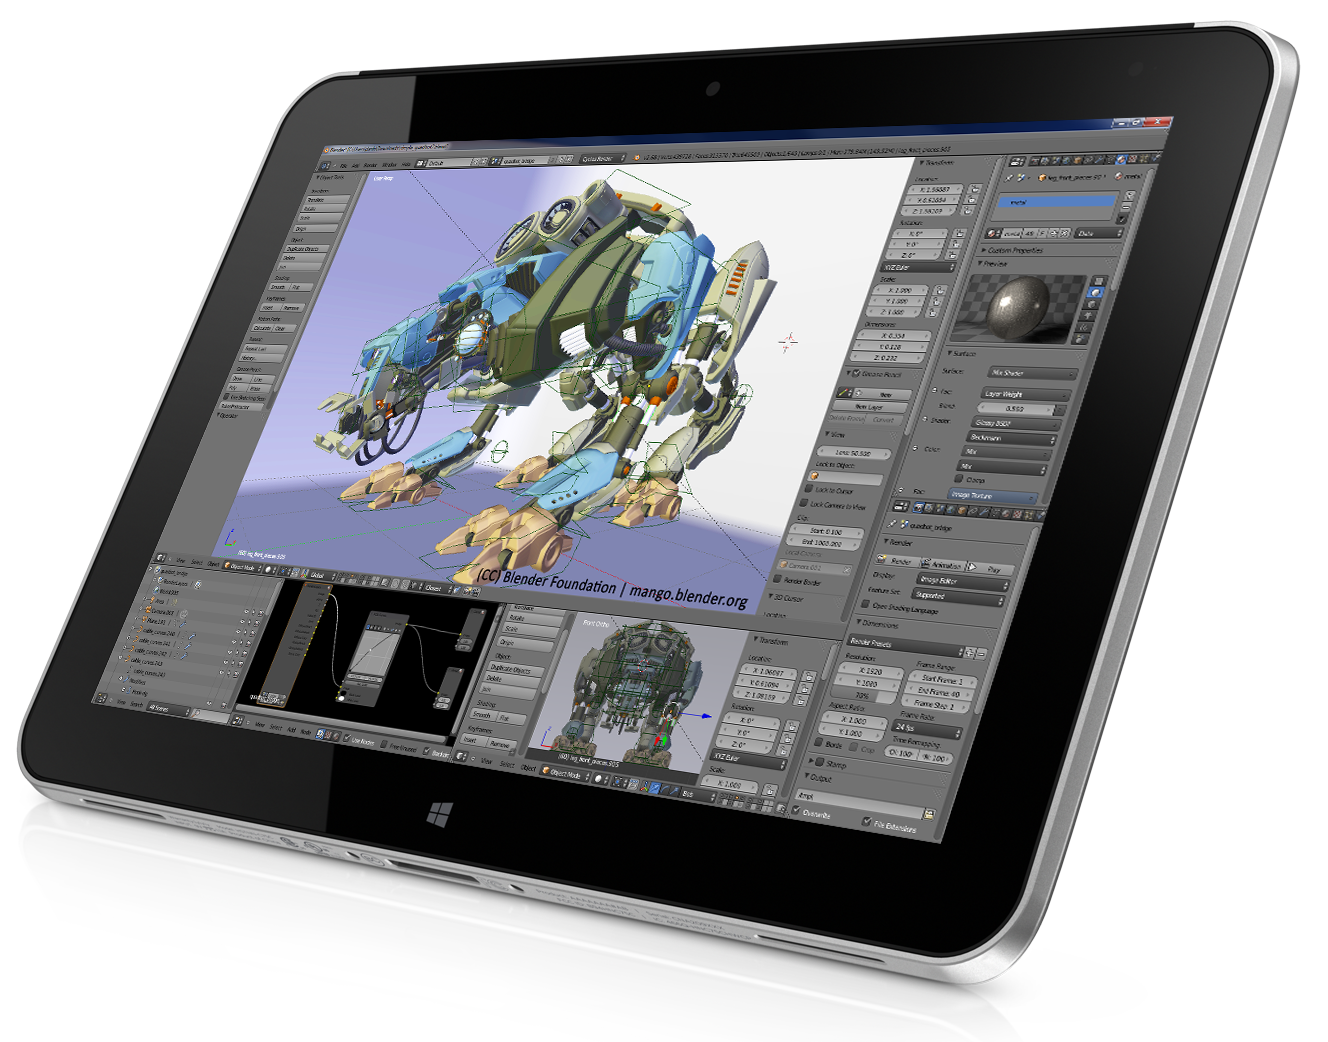 64 Bit Windows Enterprise Tablet Hp Elitepad 1000 G2 Released